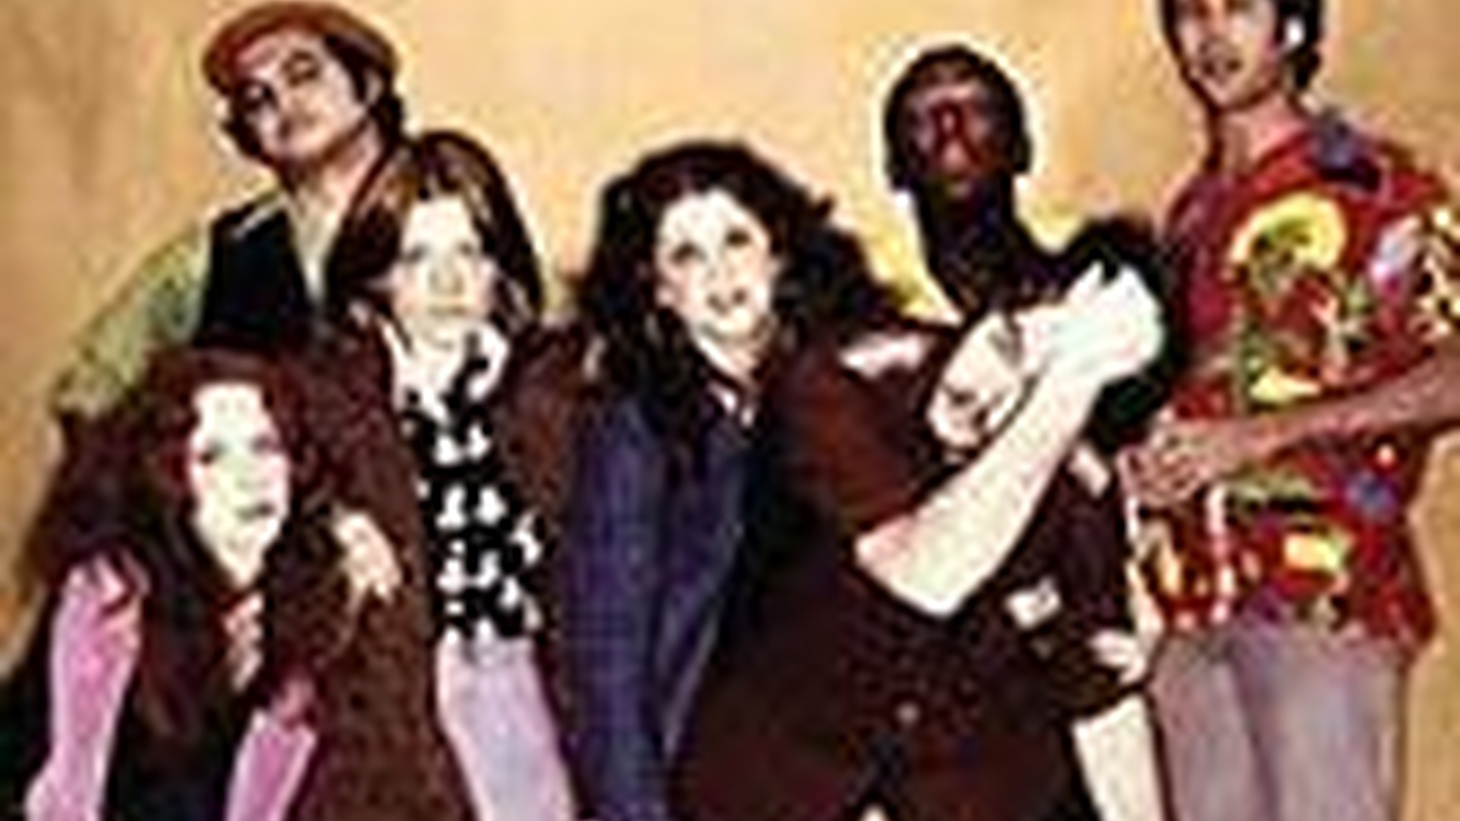 In 1975, a comedy series connected to the politics and pop culture of young people, NBC's Saturday Night Live debuted. Its first season is now on DVD. Anne Beatts, one of a handful of women writers on the original Saturday Night Live, drops in to talk about being a pioneer among a group of pioneers.